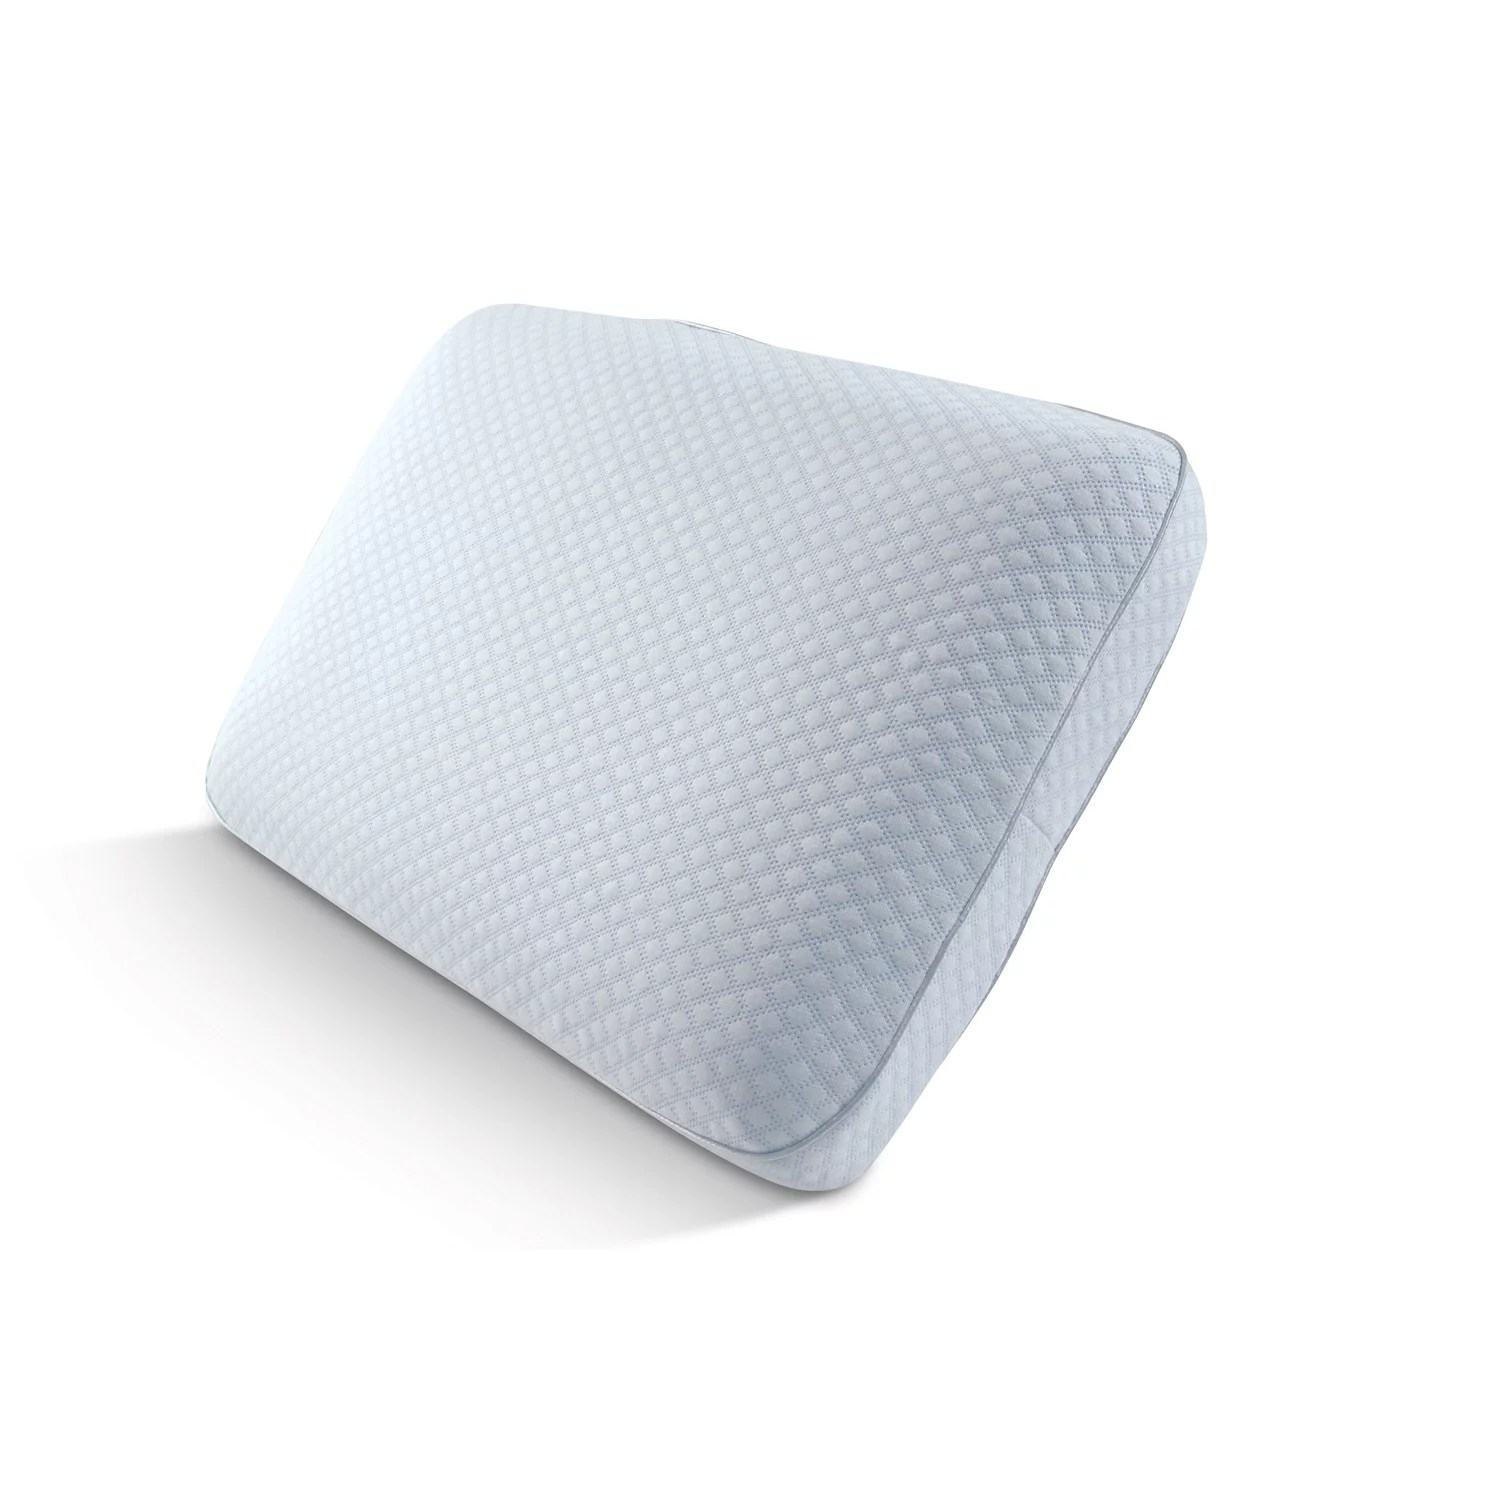 Arctic Sleep by Pure Rest Big  Soft Cooling Gel Memory